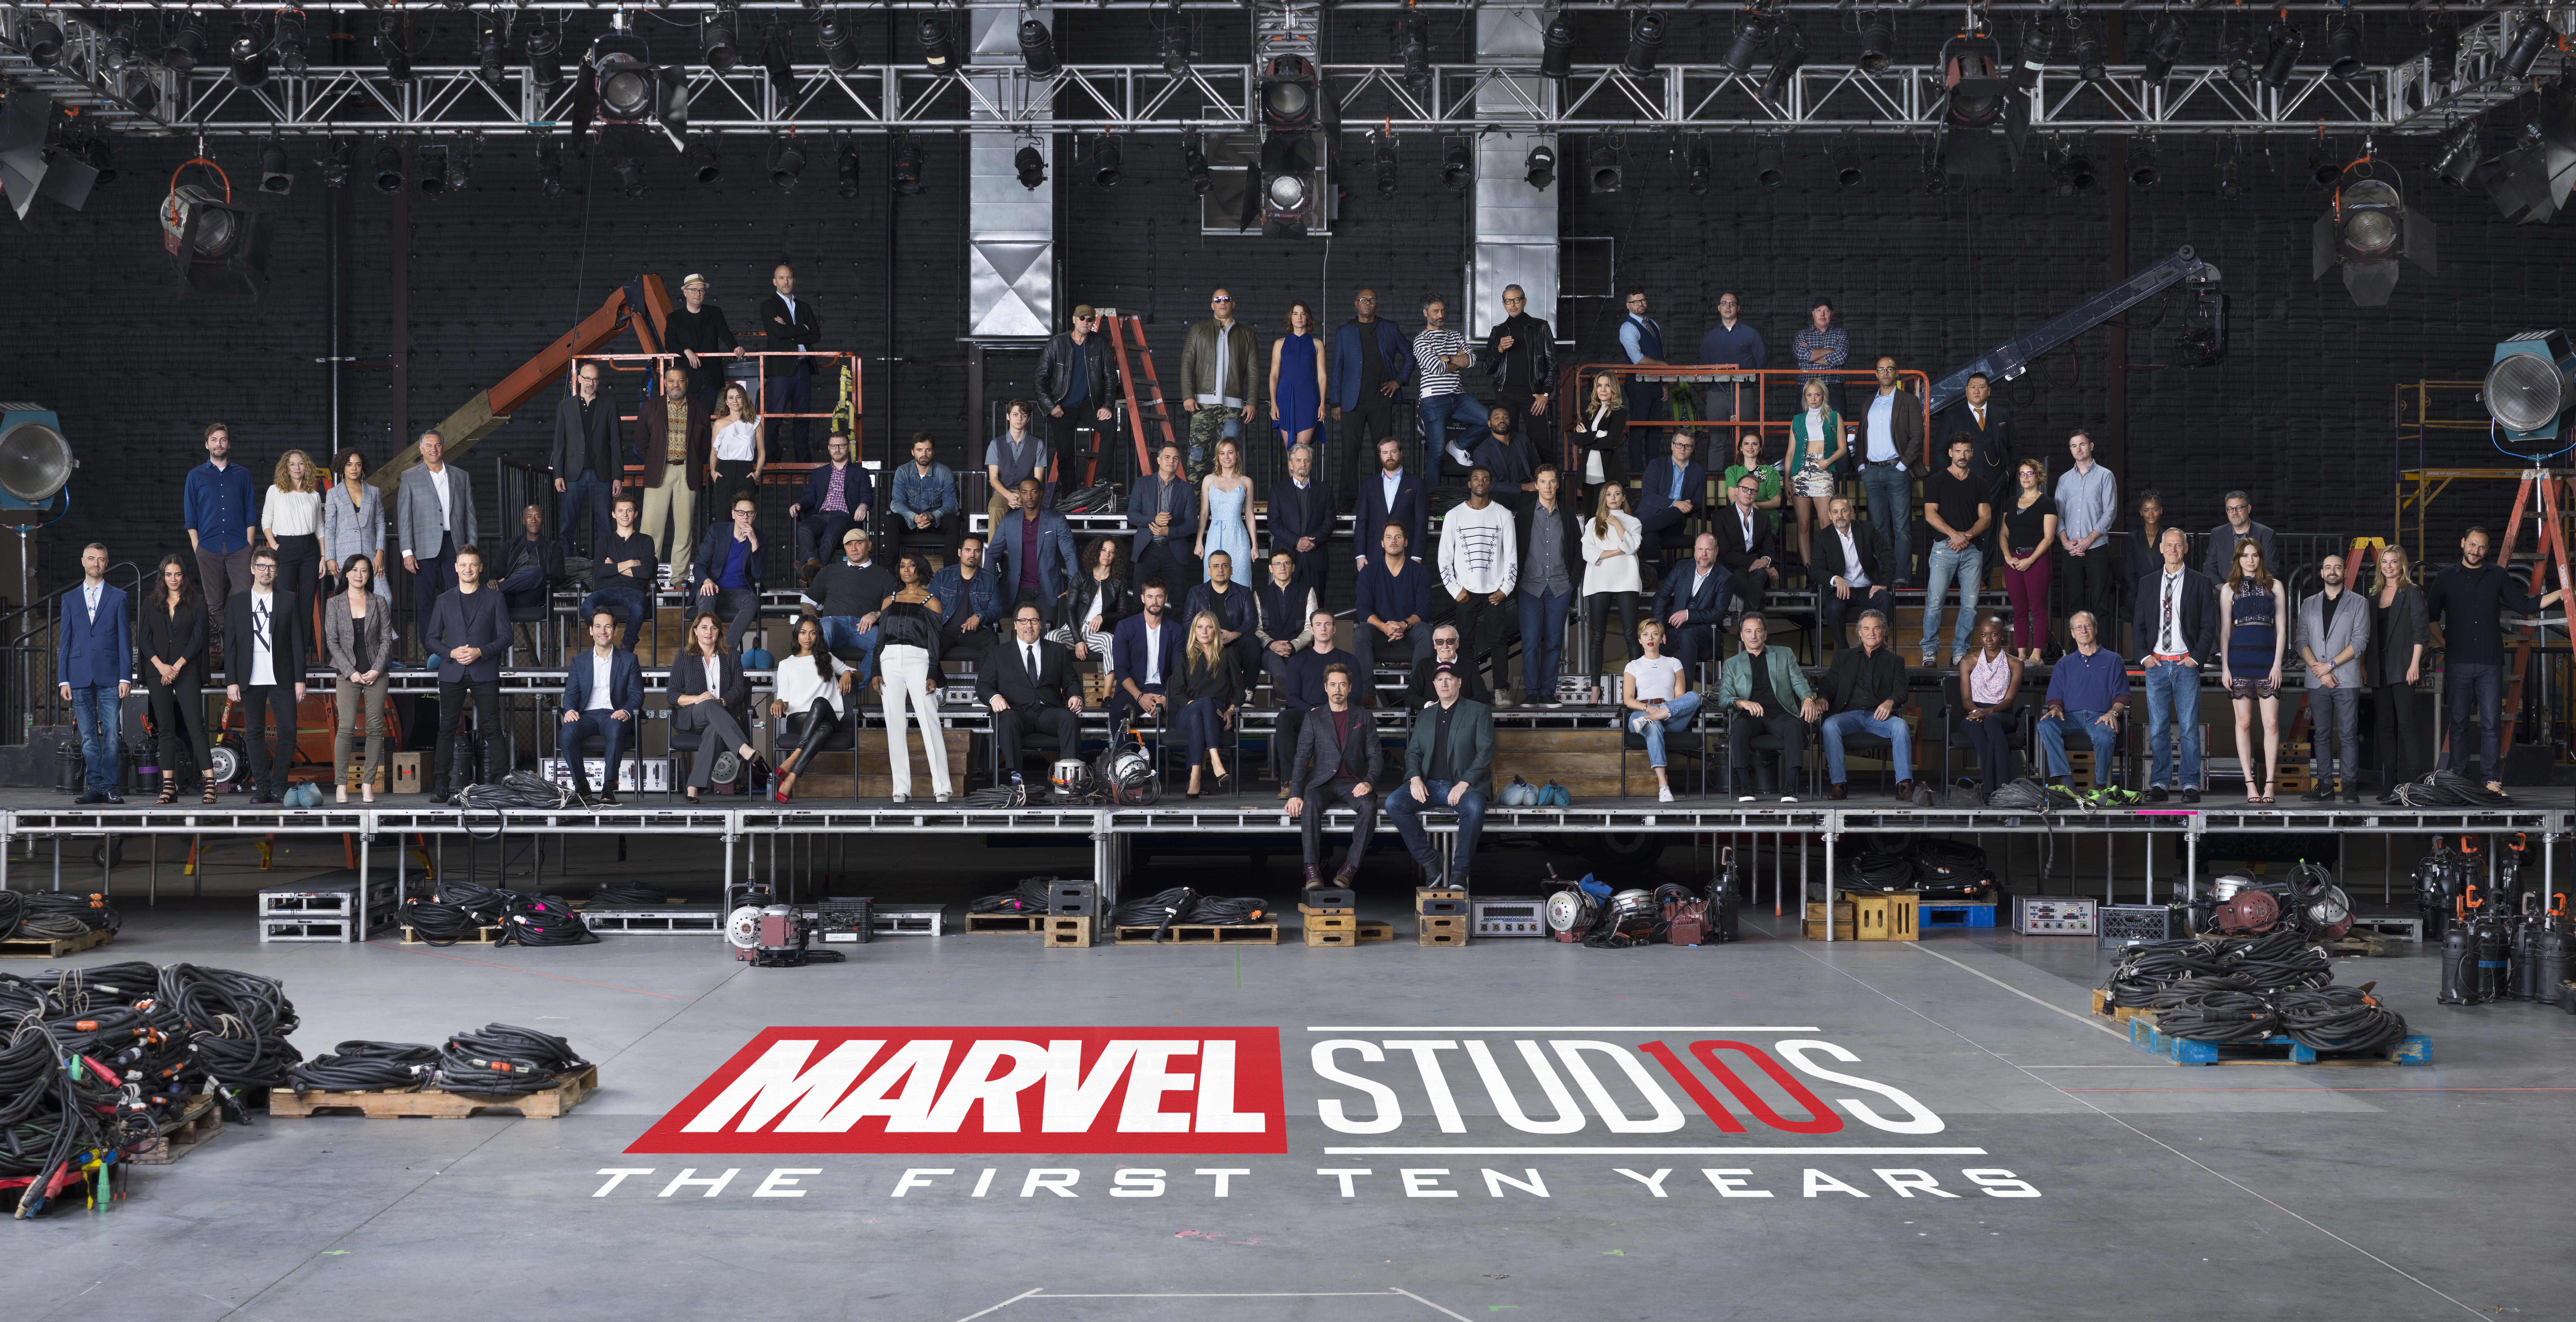 TEN YEARS. The heroes and filmmakers of Marvel Studios celebrate with a class picture. Photo from Marvel Studios